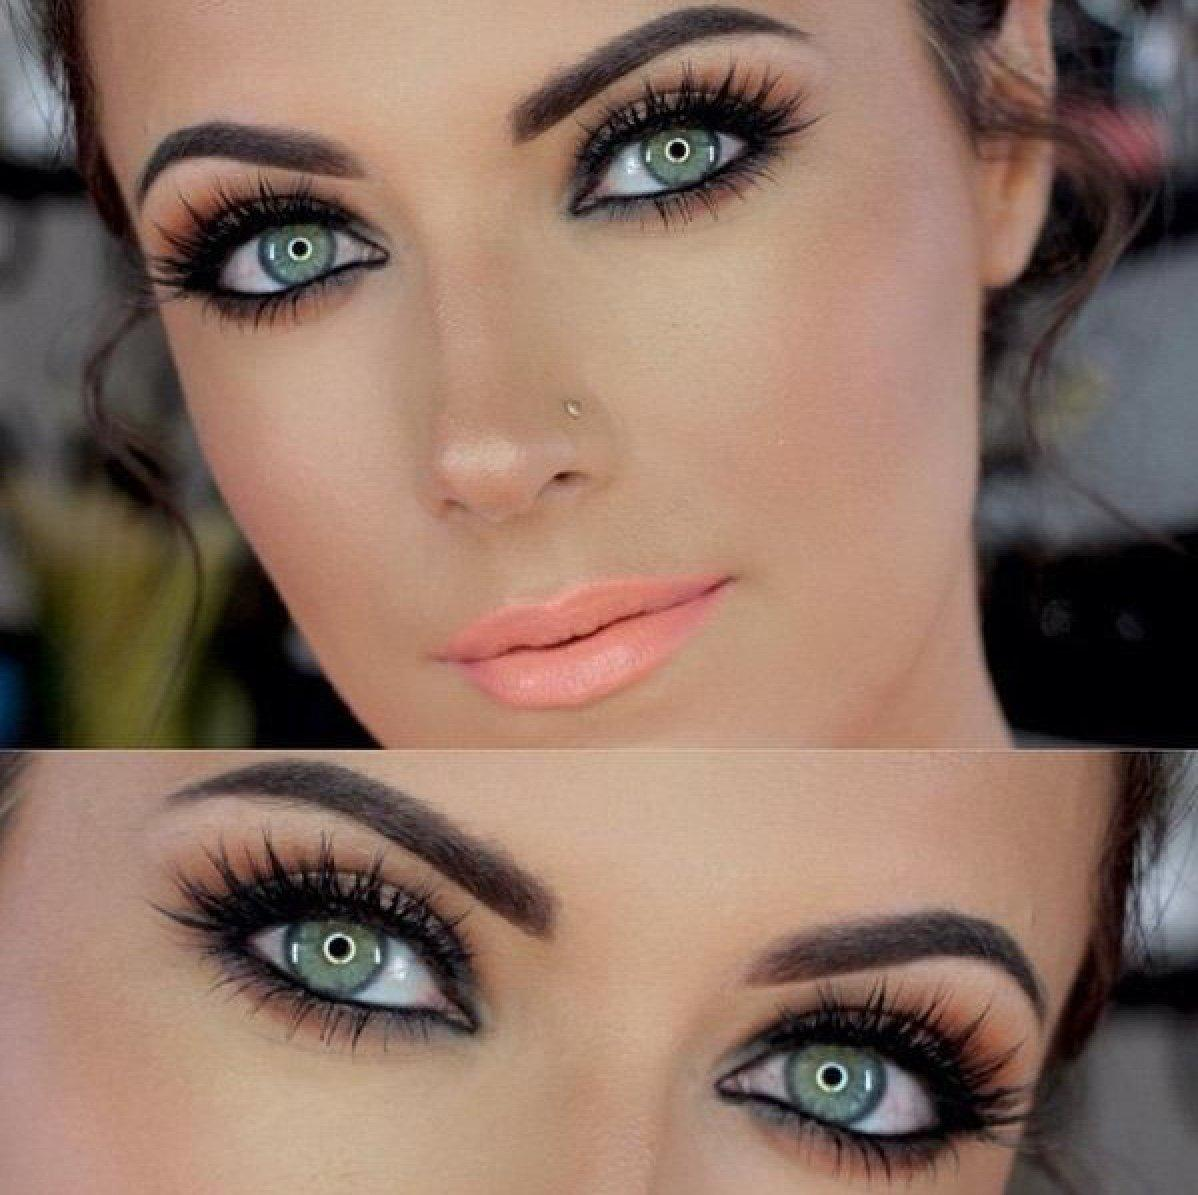 Top 10 smokey eye tutorials for your makeup inspiration page 7 of 10 top 10 smokey eye tutorials for your makeup inspiration baditri Image collections